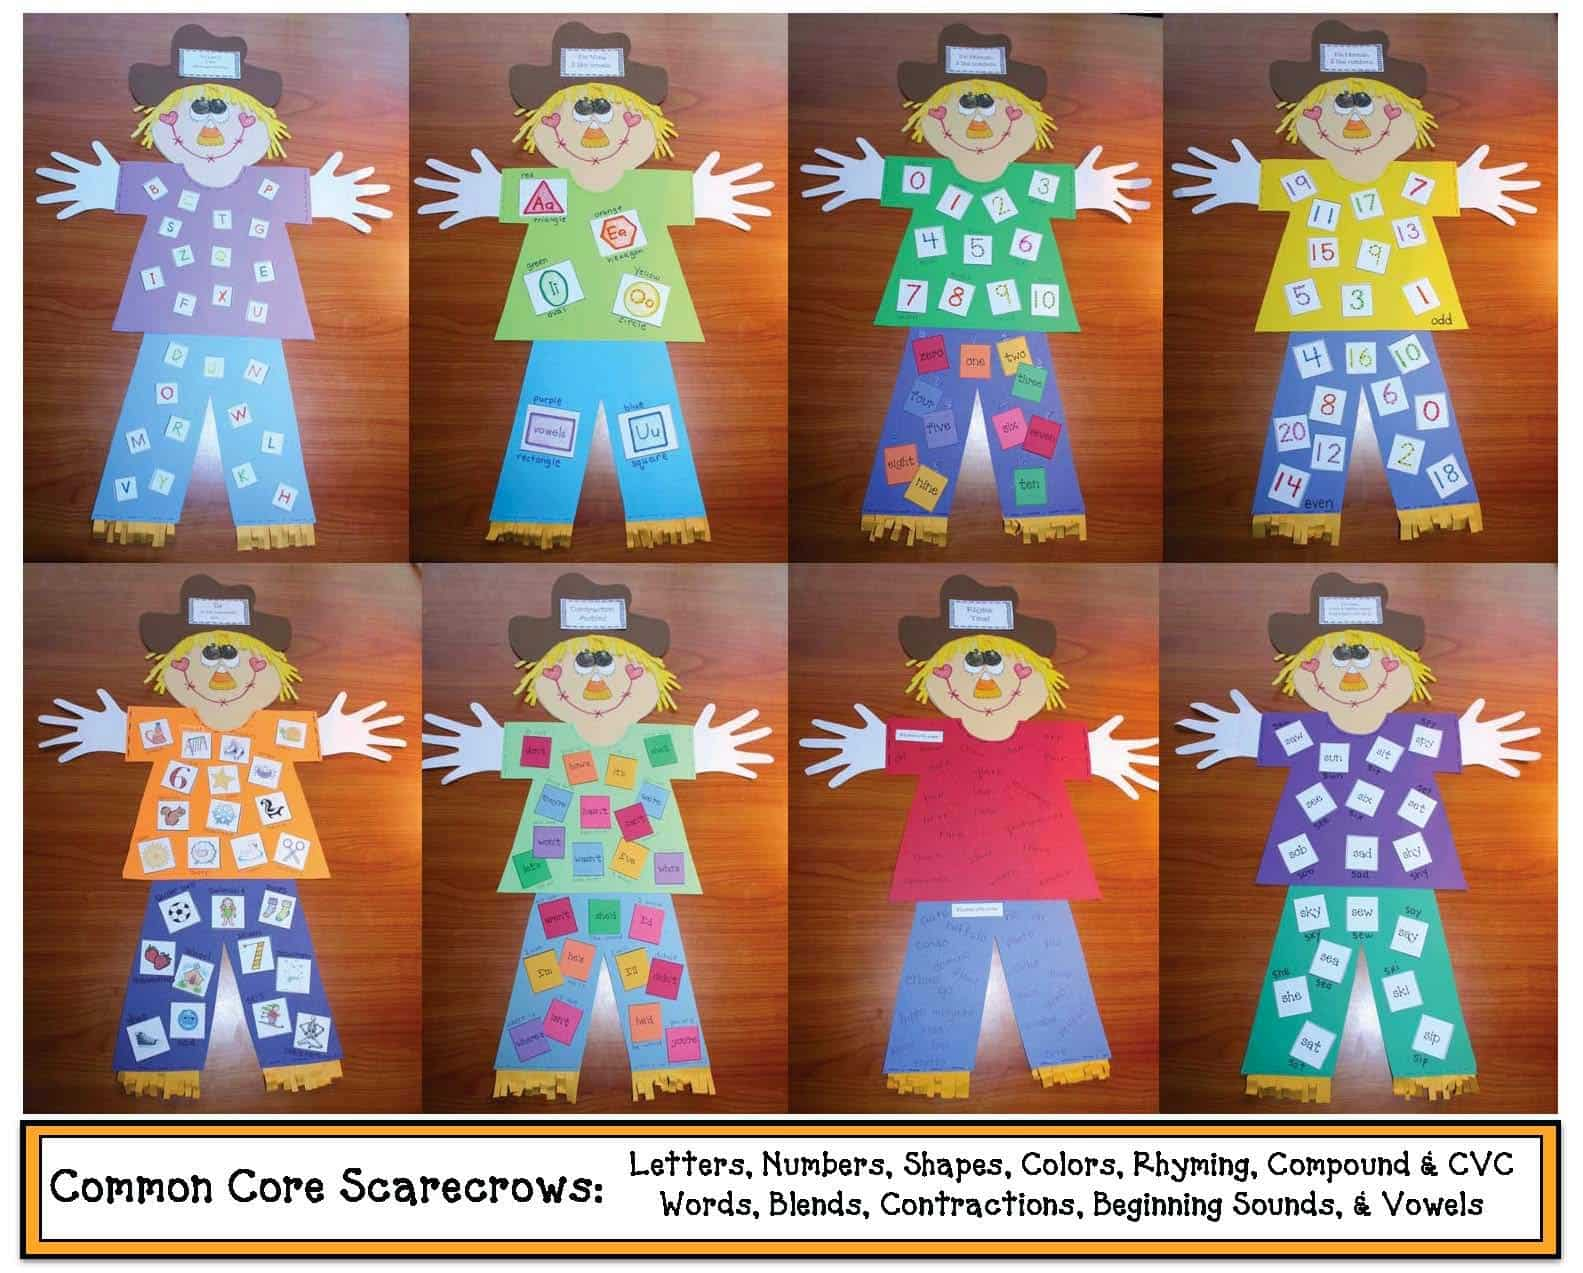 Common Core Scarecrows